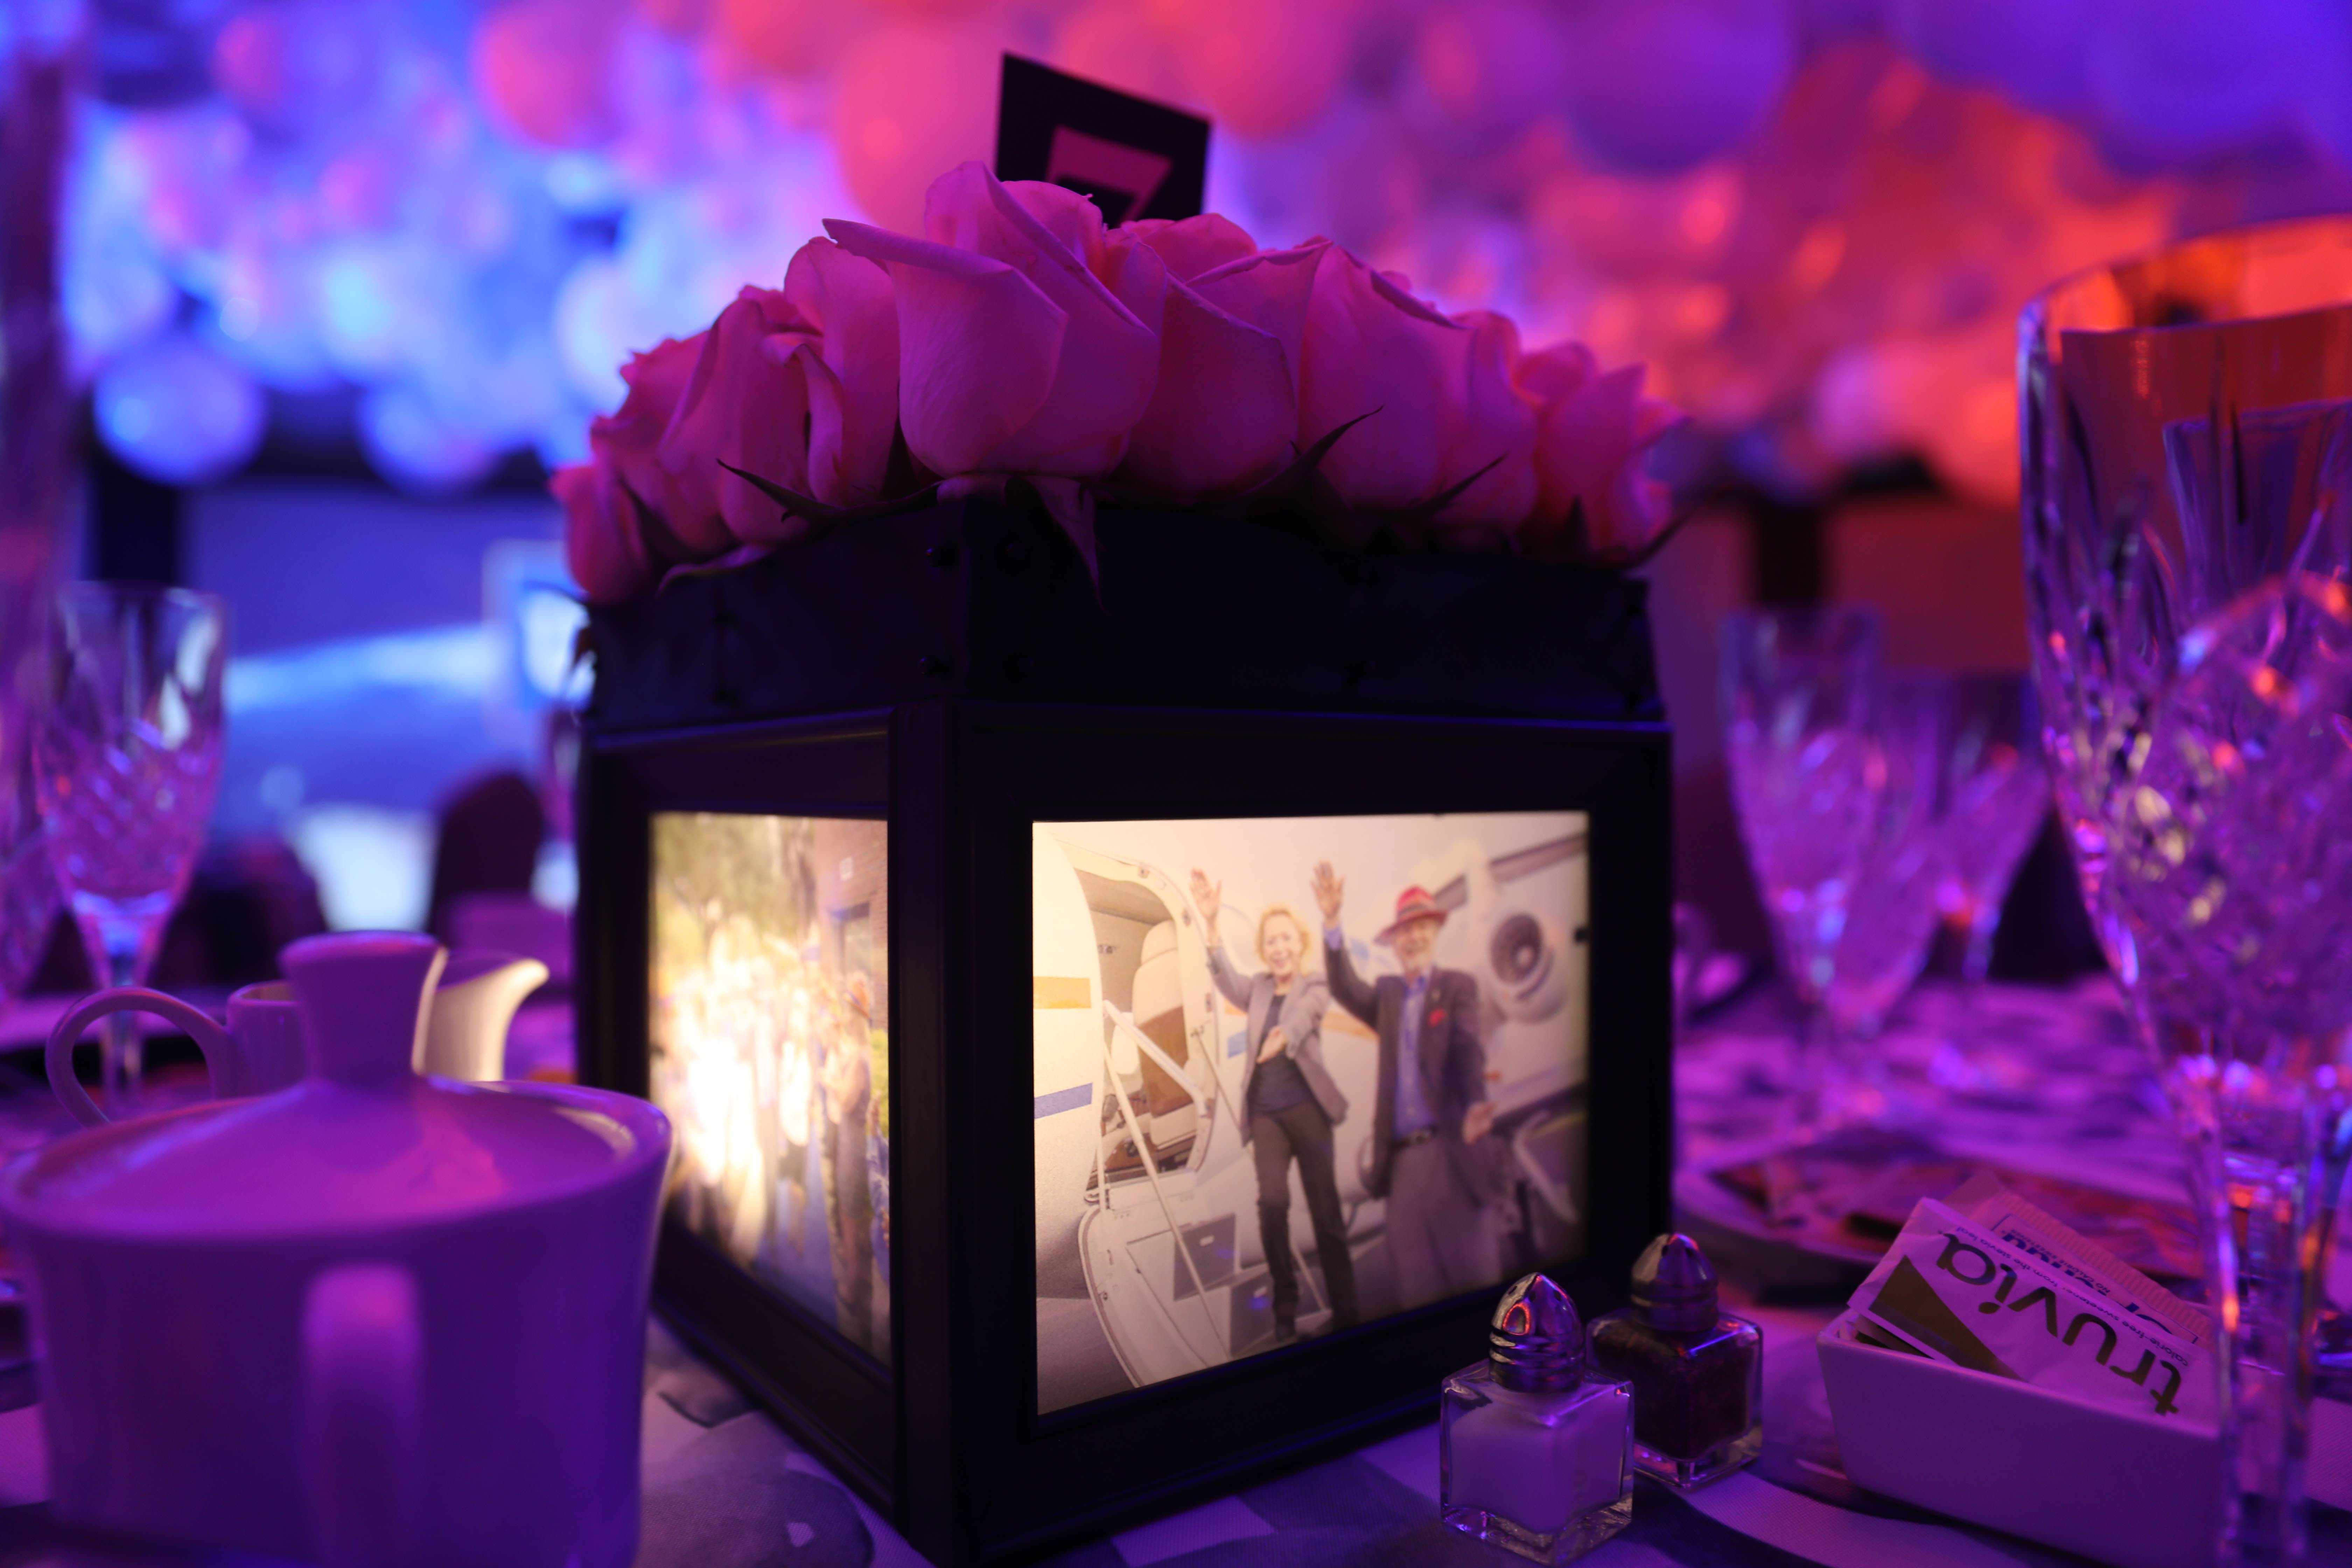 Close-up image of a lit picture box on a table set for 8 with purple lighting washing the room, the box is topped with a dozen cut roses.